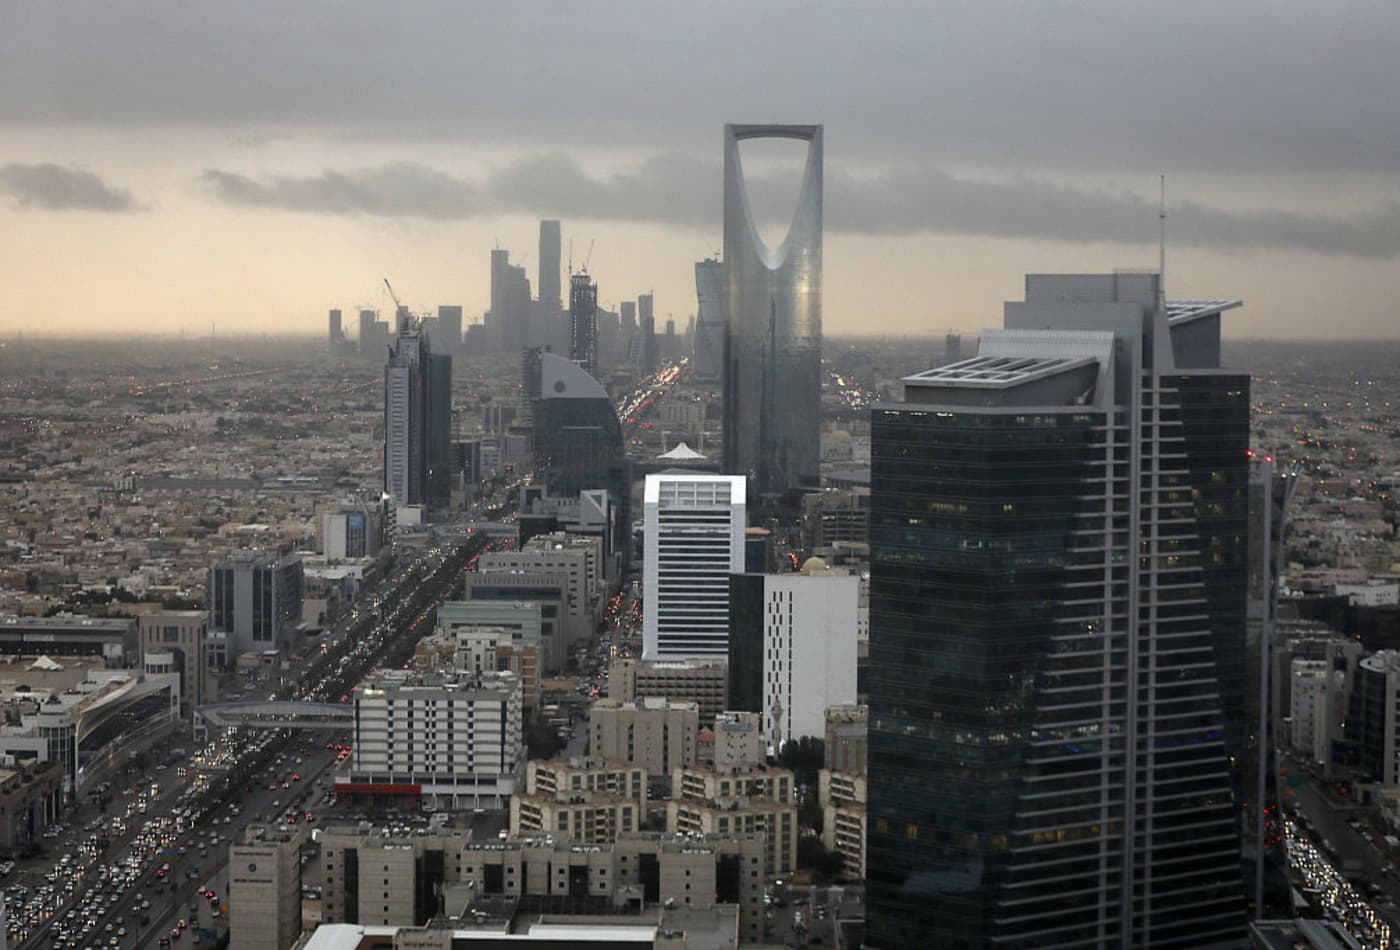 Saudi's $500 billion mega-city NEOM is attracting 'overwhelming' interest from investors